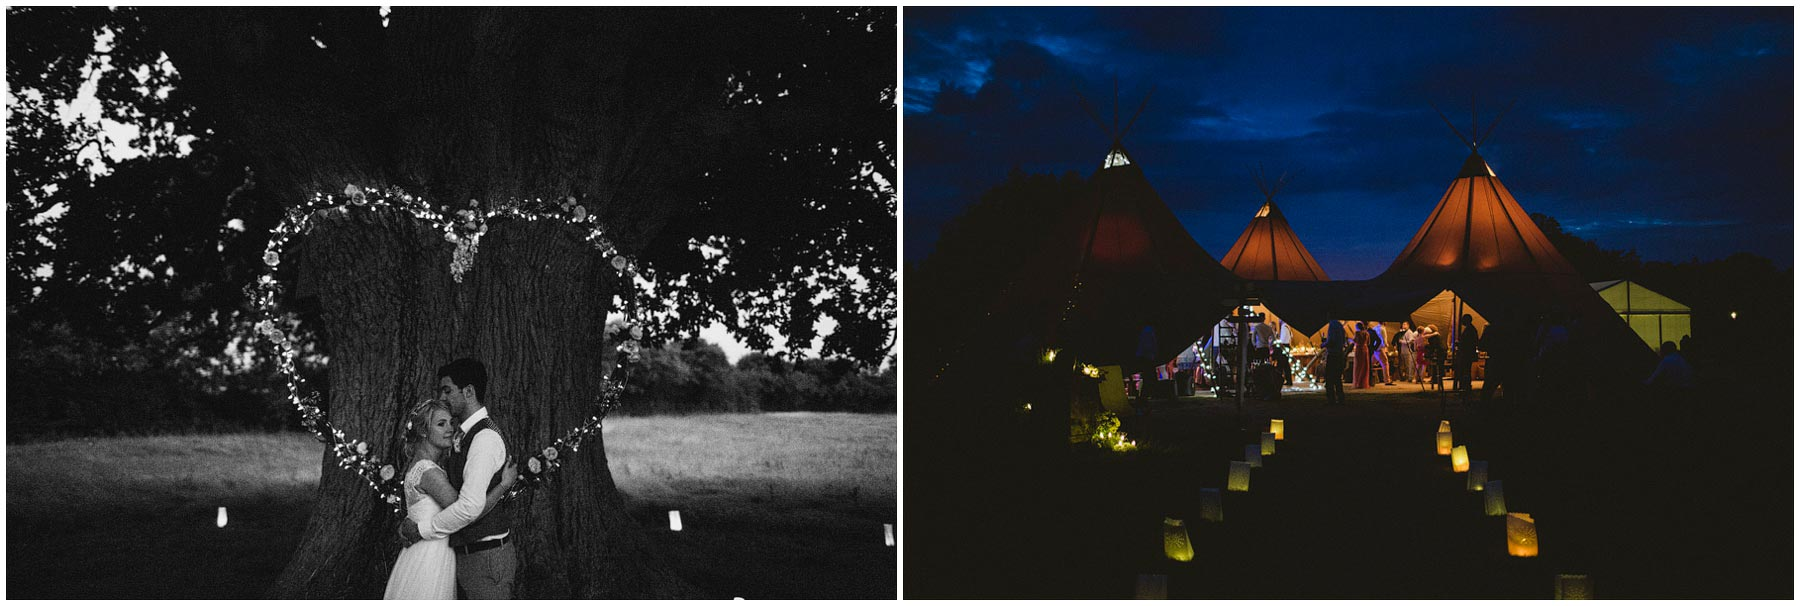 Kent-Festival-Tipi-wedding-photography_0189